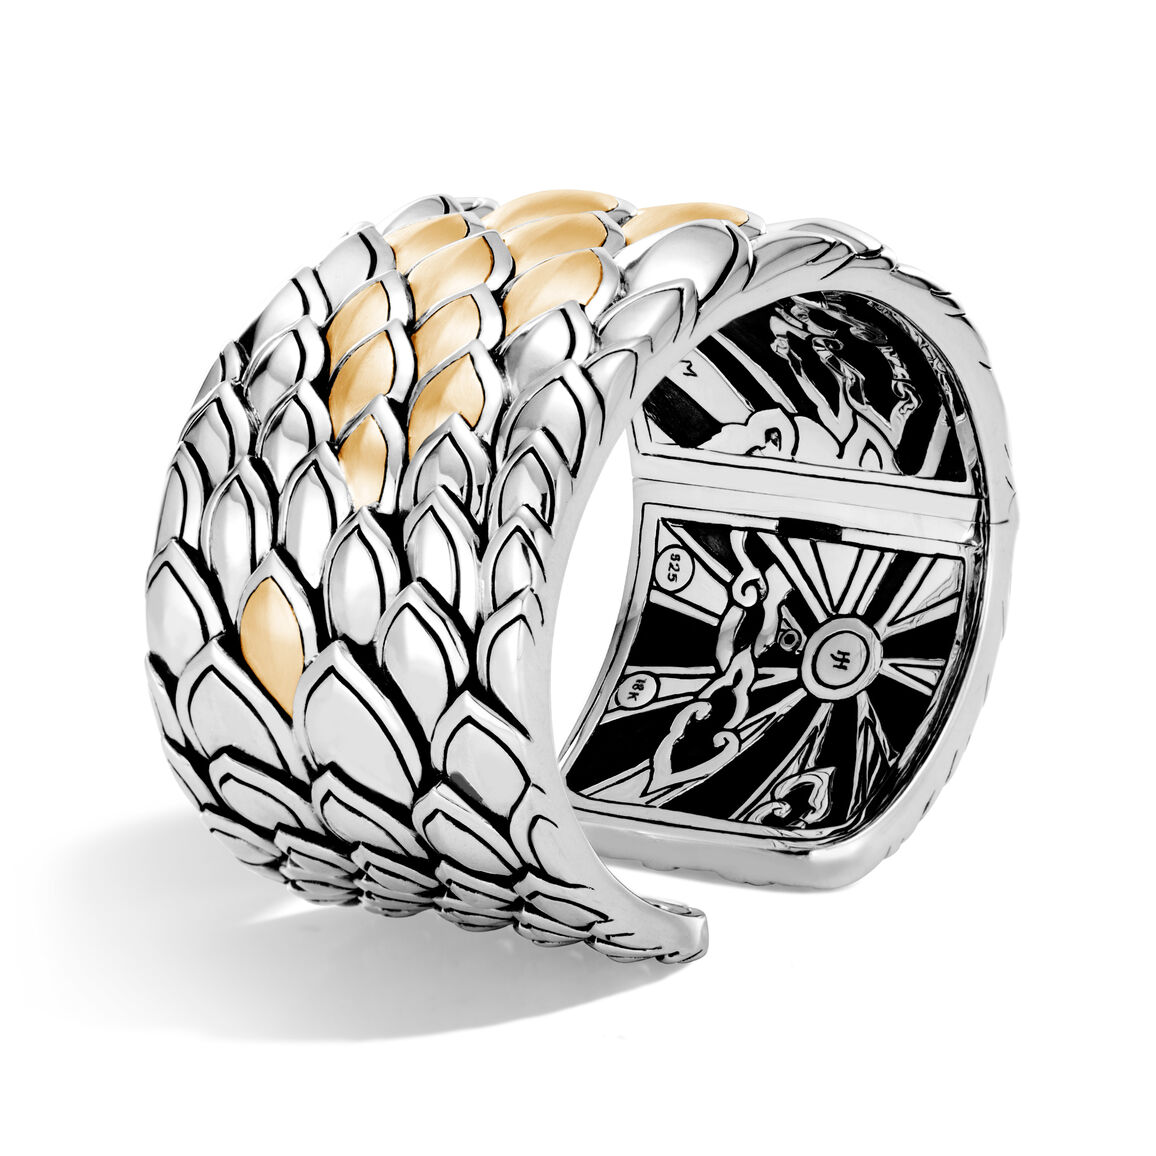 Legends Naga 40mm Kick Cuff in Silver and Brushed 18K Gold